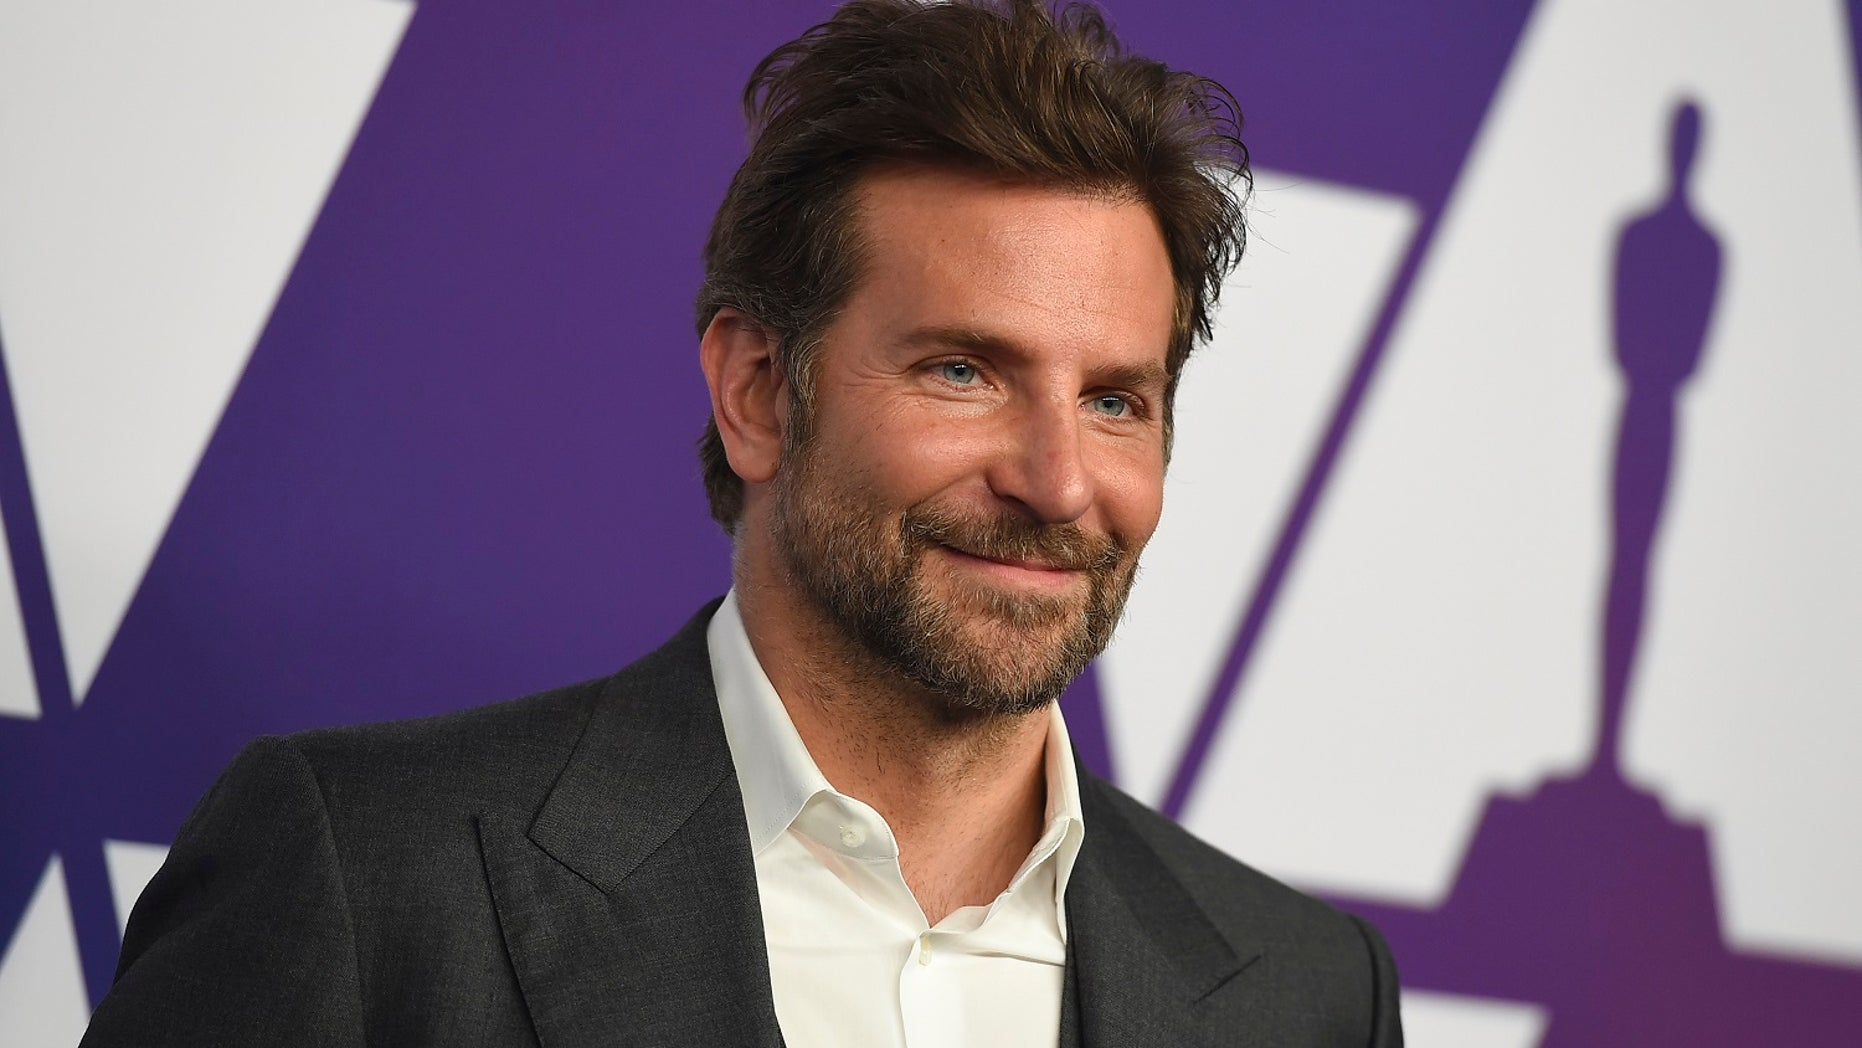 Bradley Cooper reveals he felt 'embarrassed' by Oscars Best Director snub